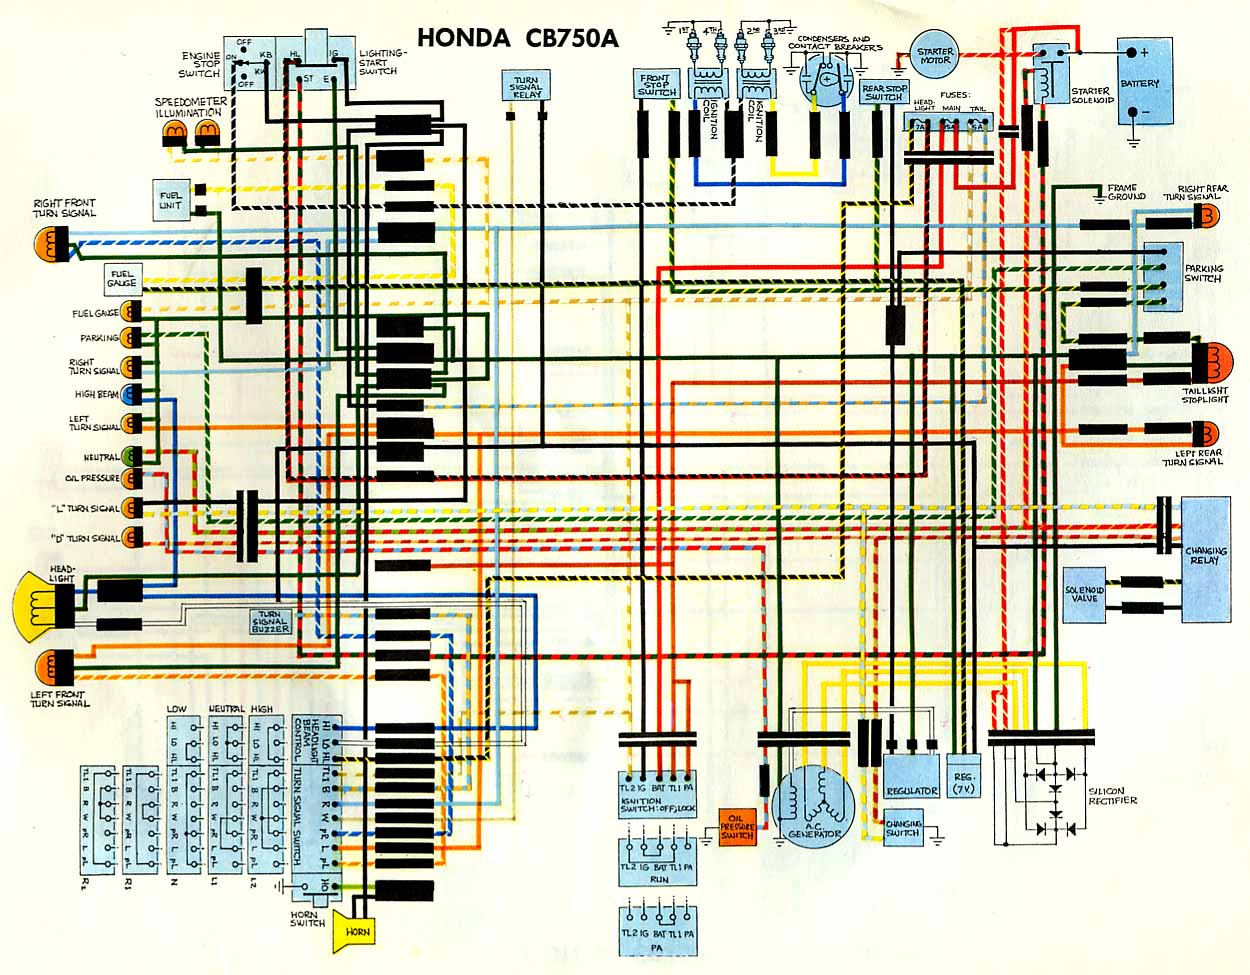 CB750auto wiring diagrams wiring diagram for a 1979 honda cb750f at soozxer.org